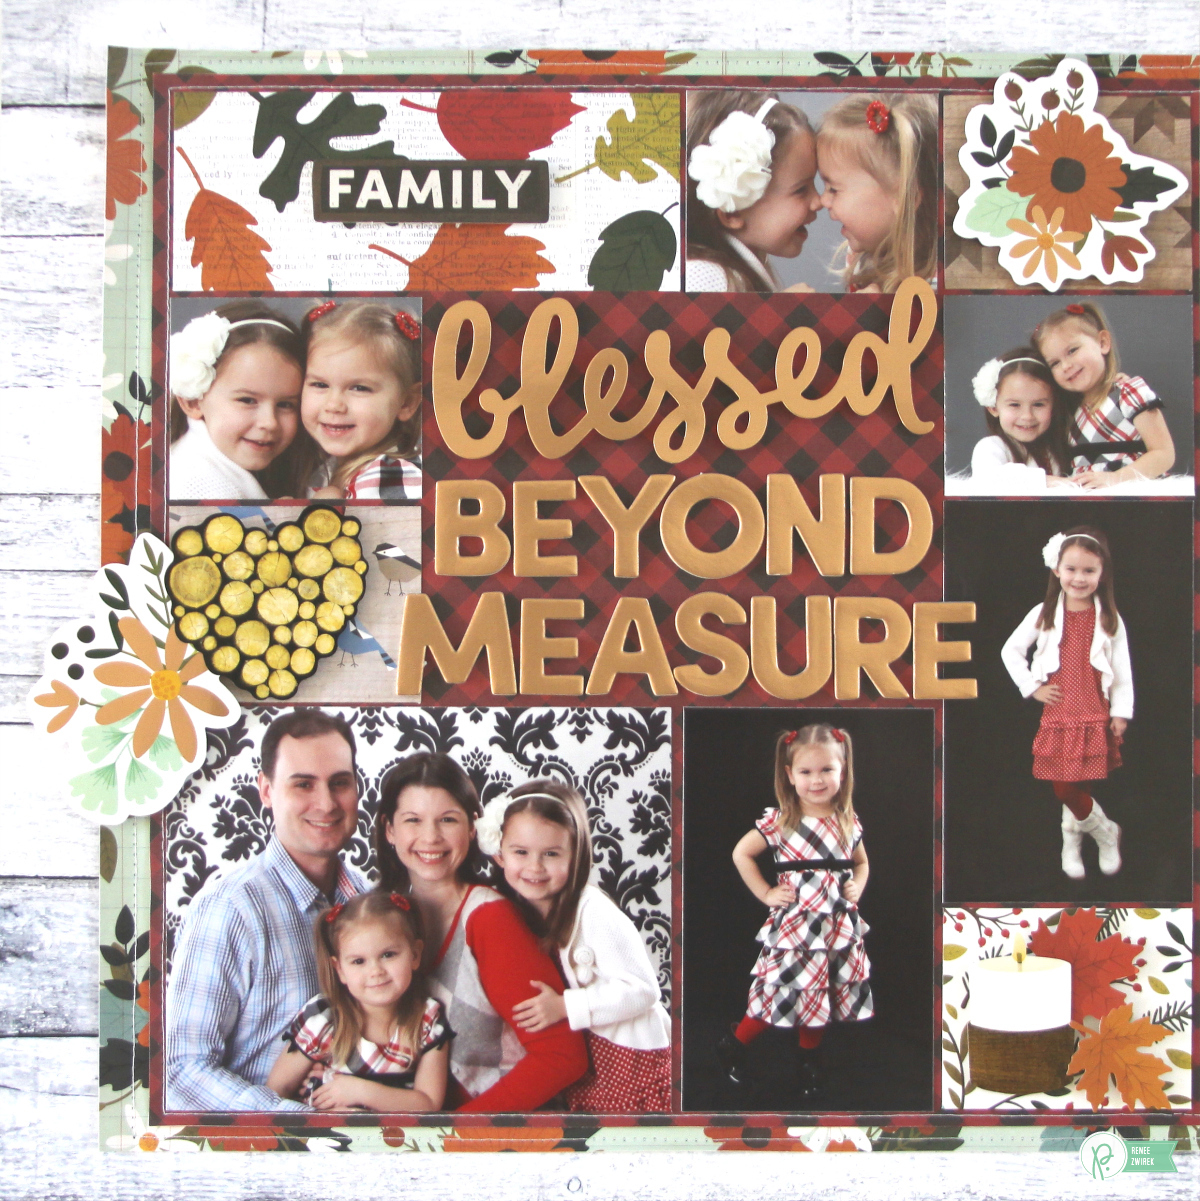 Scrapbook your favorite family photos and count your blessings with this Blessed Beyond Measure Double Page Layout by @reneezwirek using the #pbwarmandcozy collection by @pebblesinc and @Tatertots and Jello .com